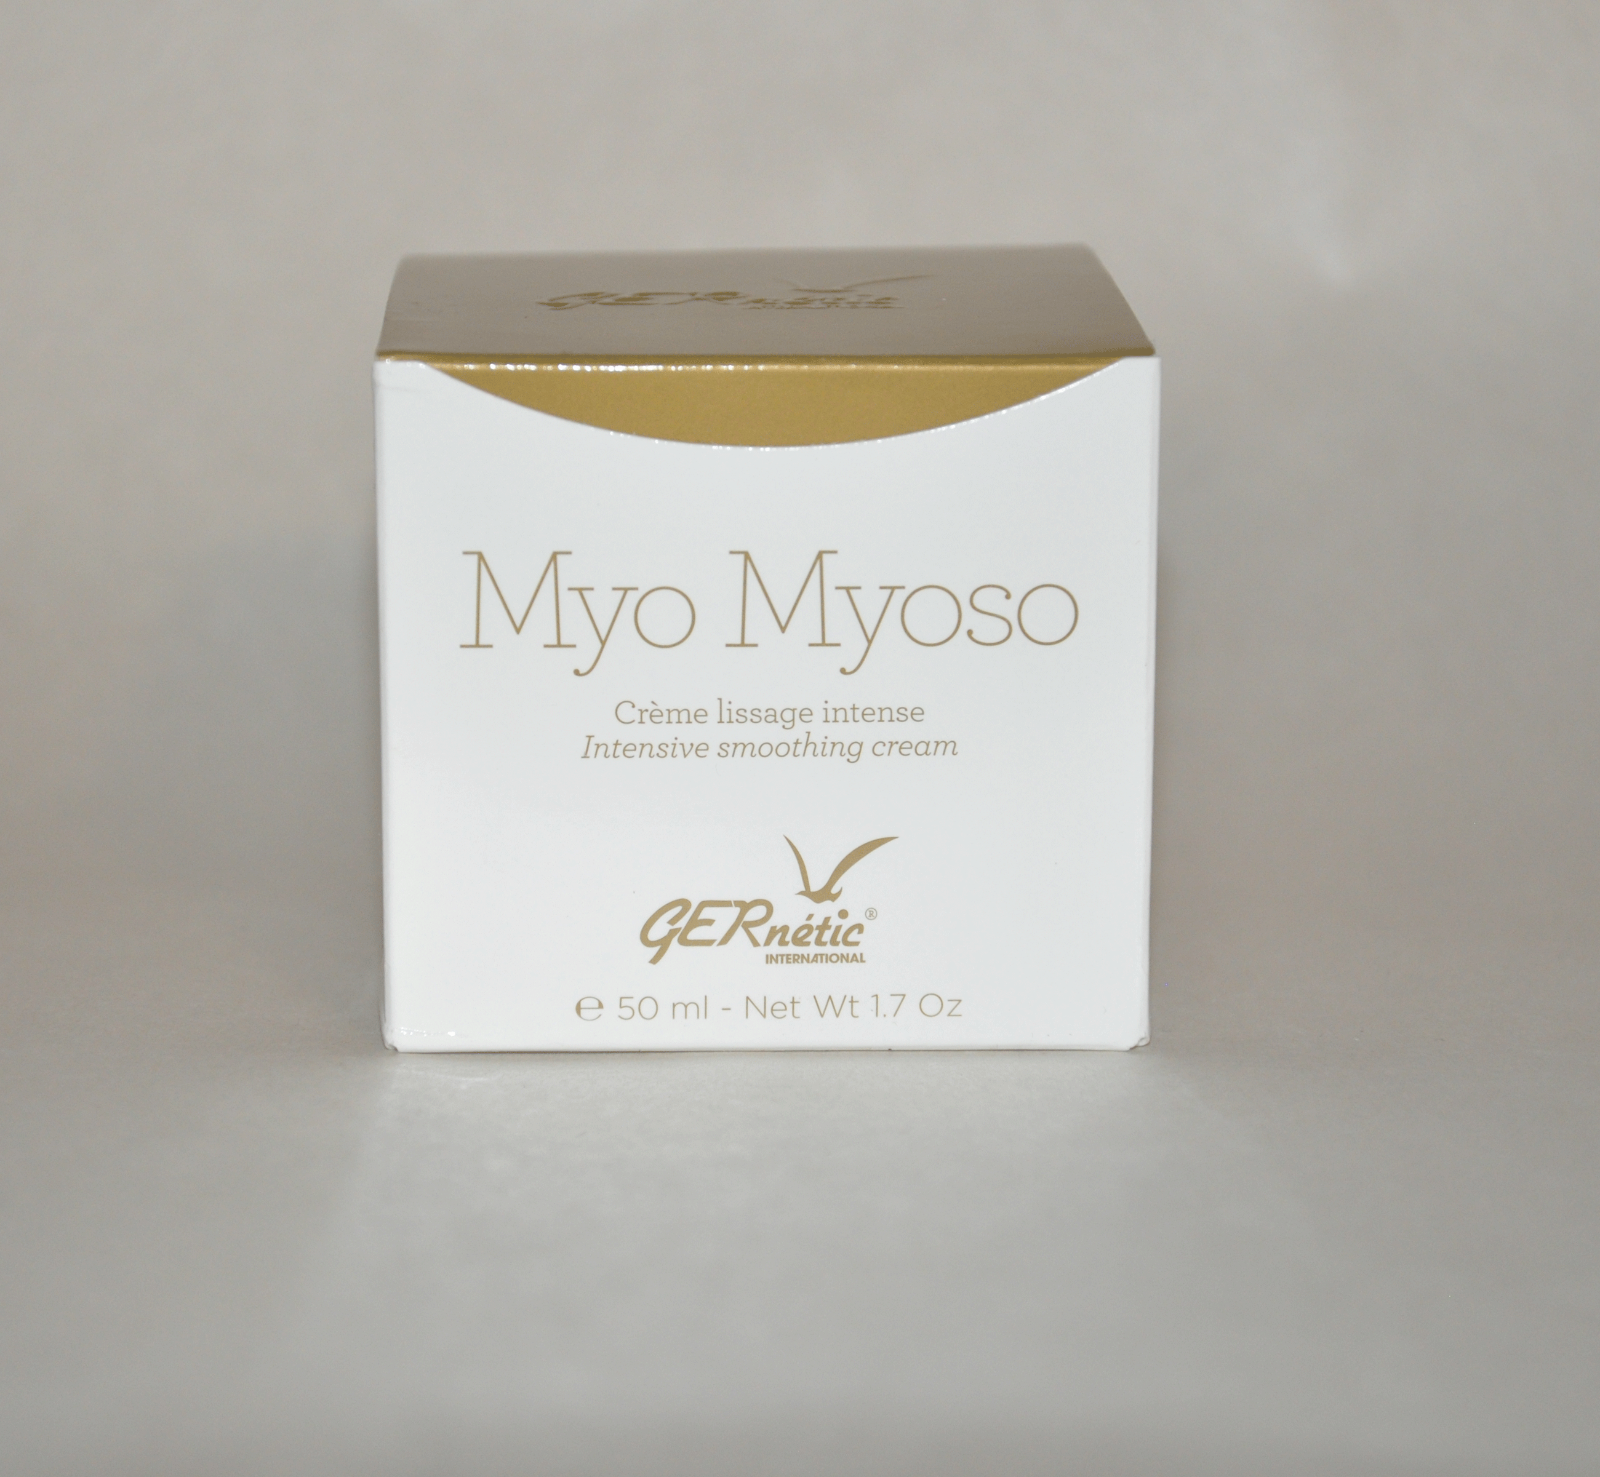 Primary image for Gernetic Myo Myoso Intensive smoothing cream 50ml/1.7oz. New (Free shipping)